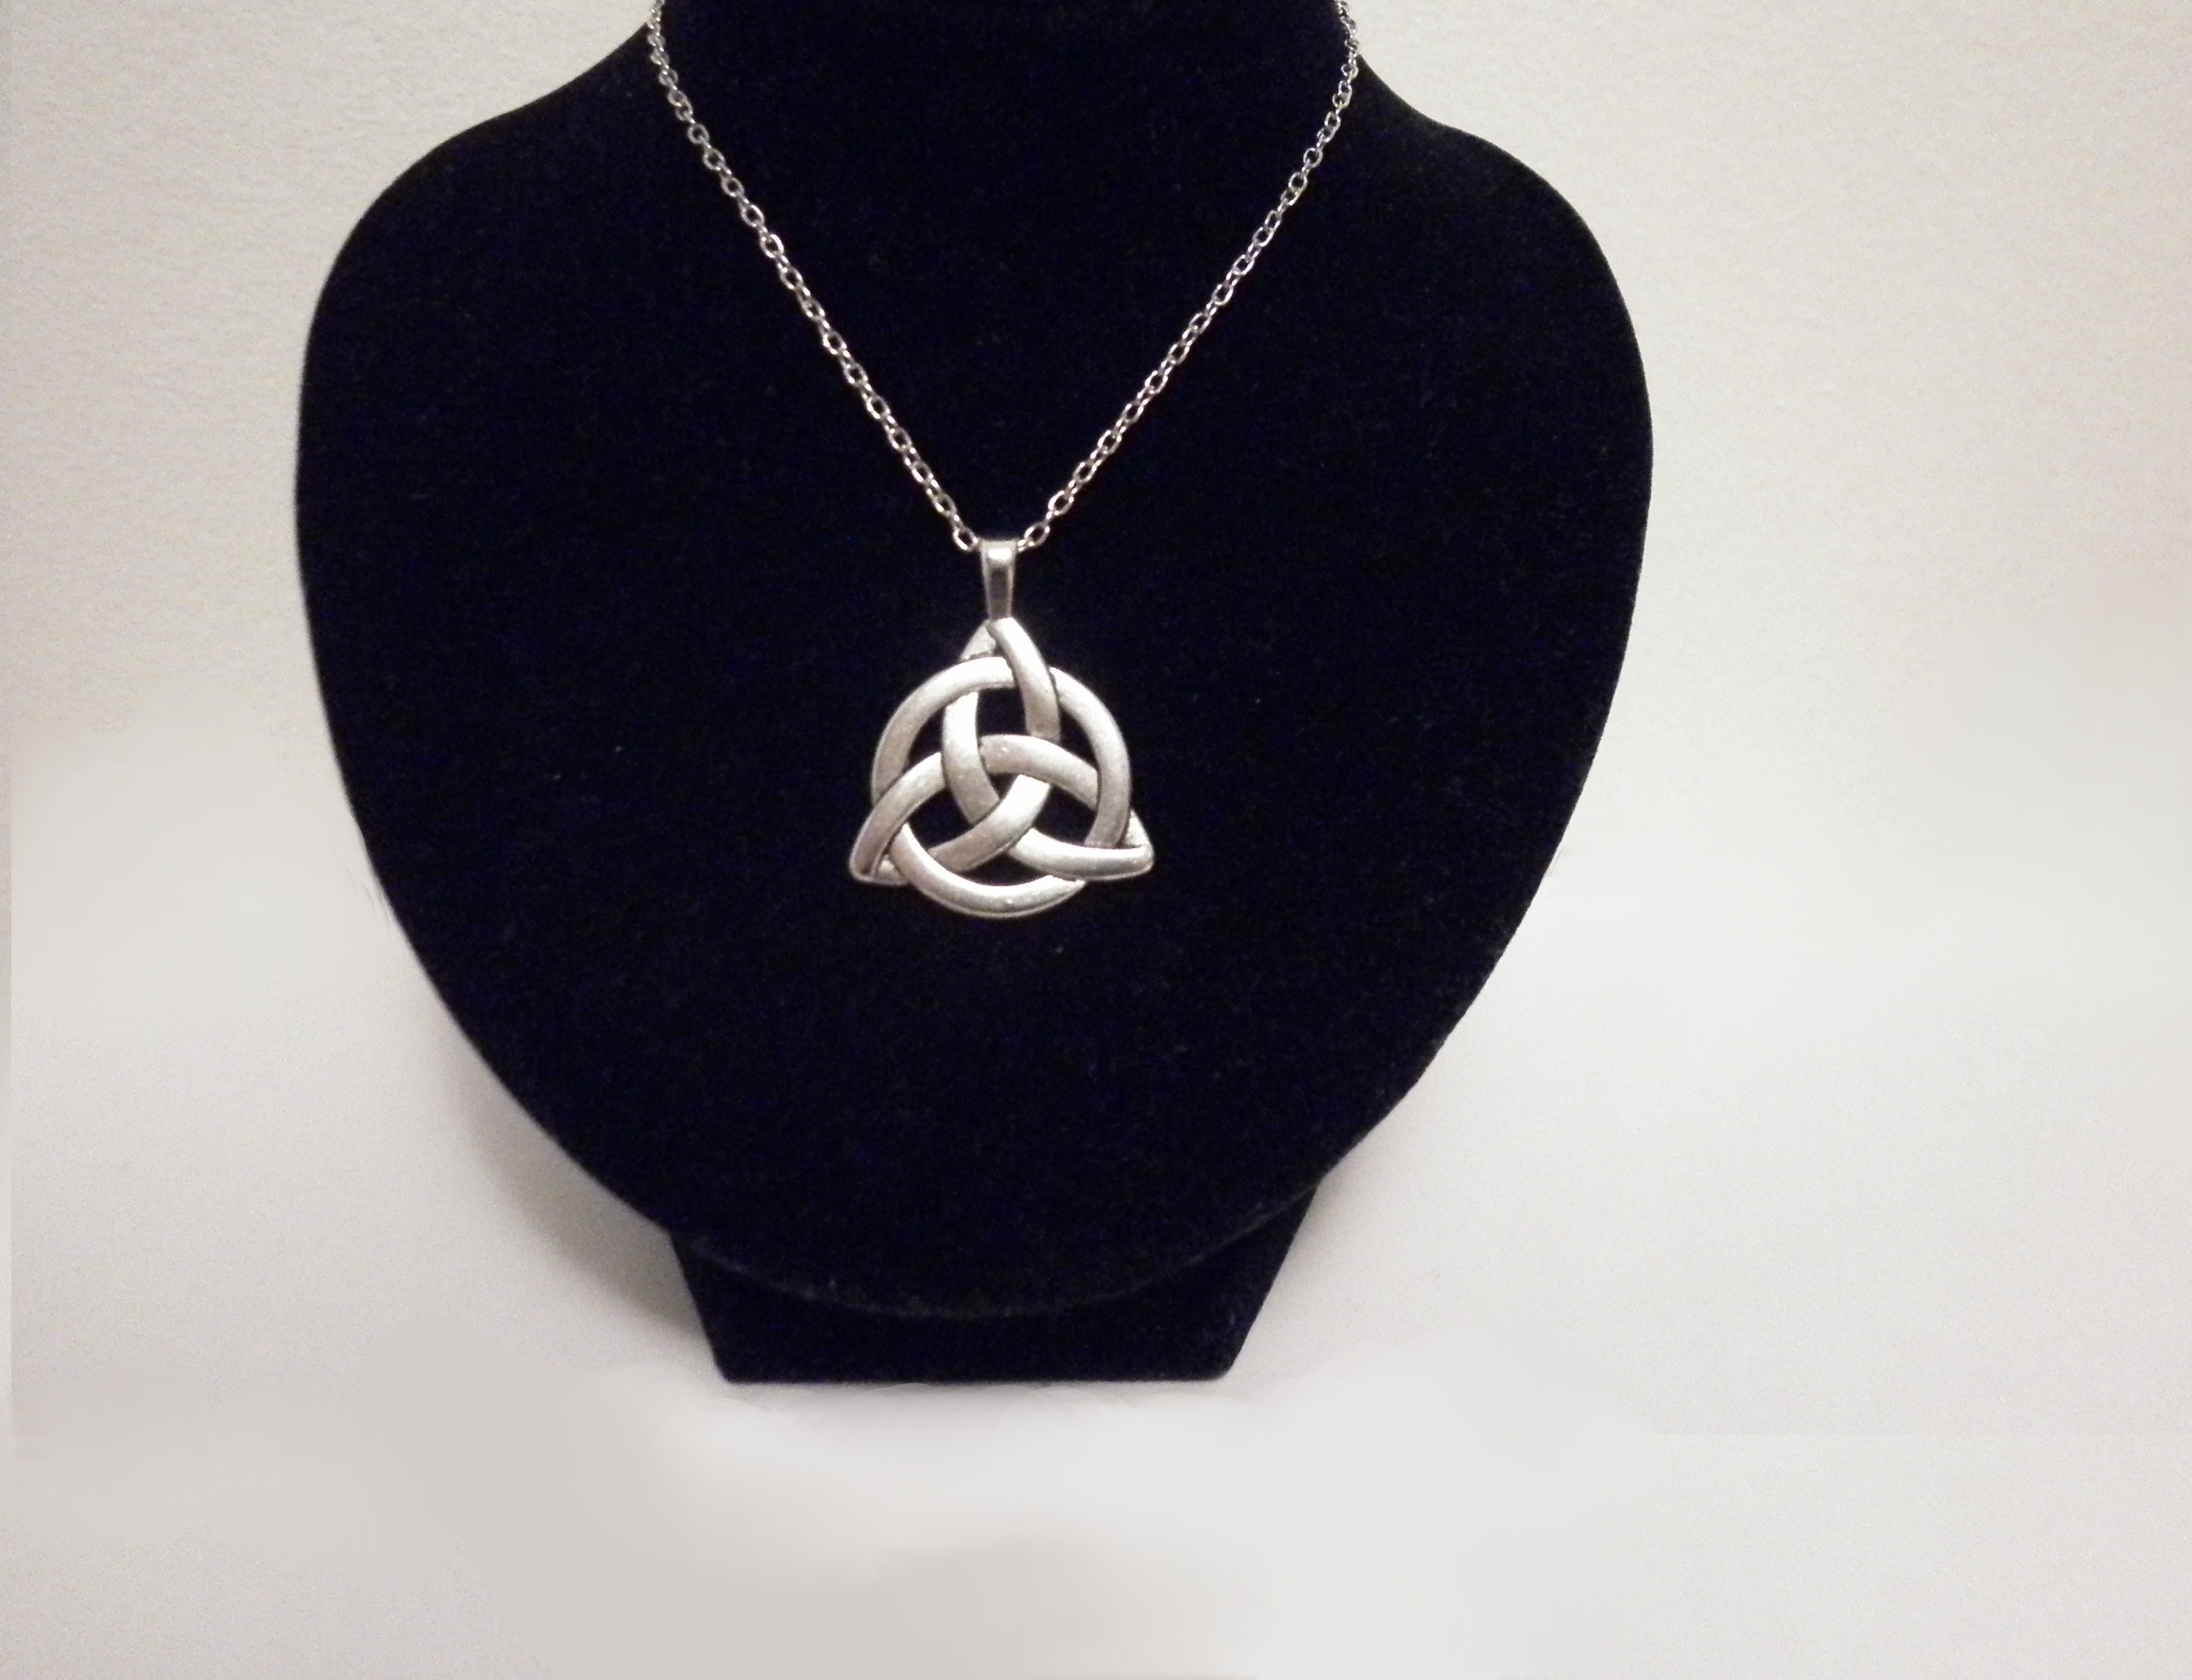 pagan triquetra wicca silver pendant celtic original knot celticknot necklace goth products